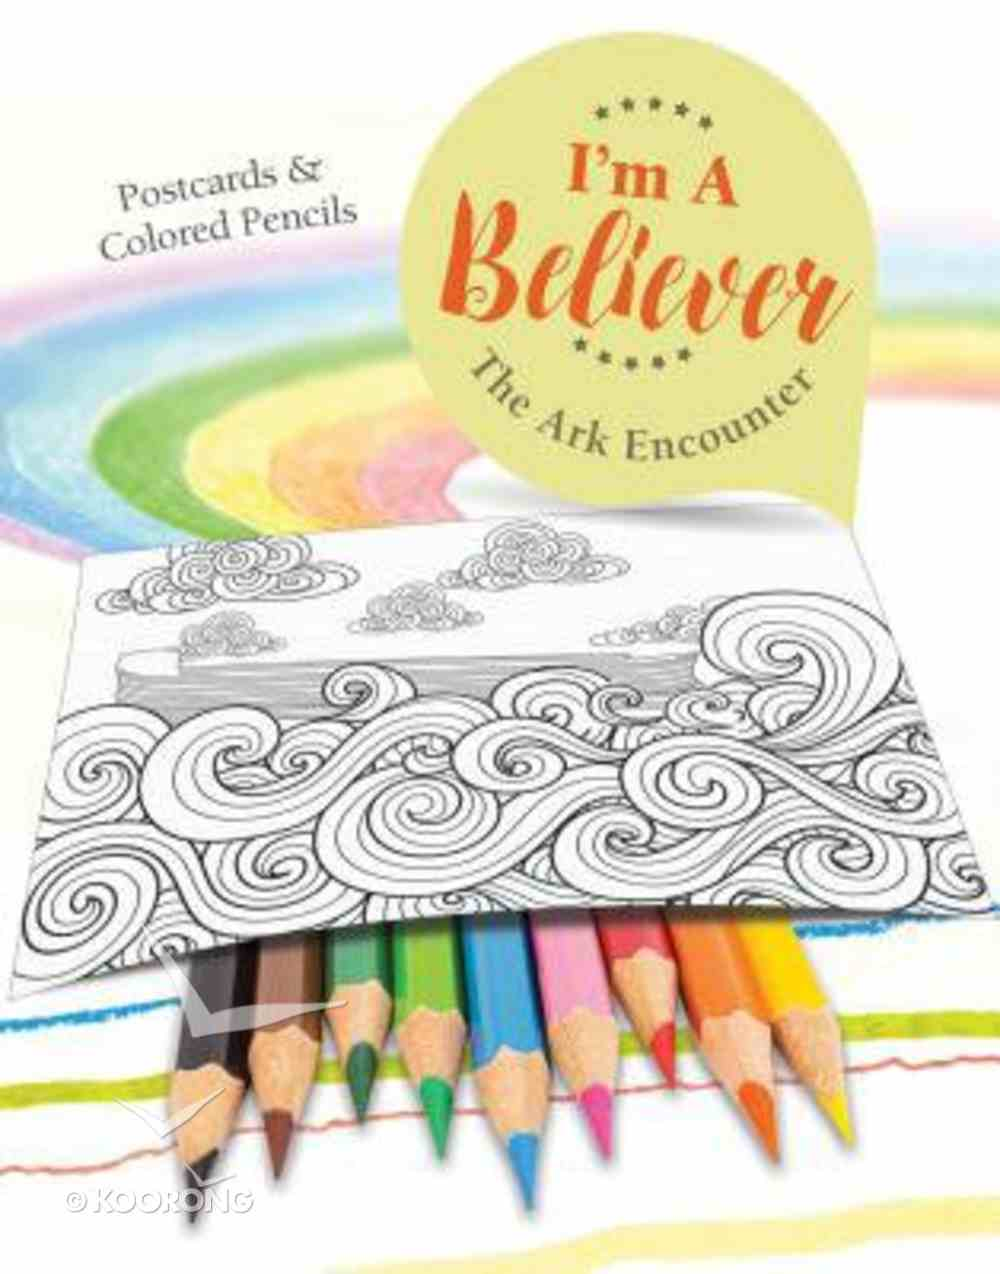 I'm a Believer: The Ark Encounter (Postcards & Colored Pencils) Cards